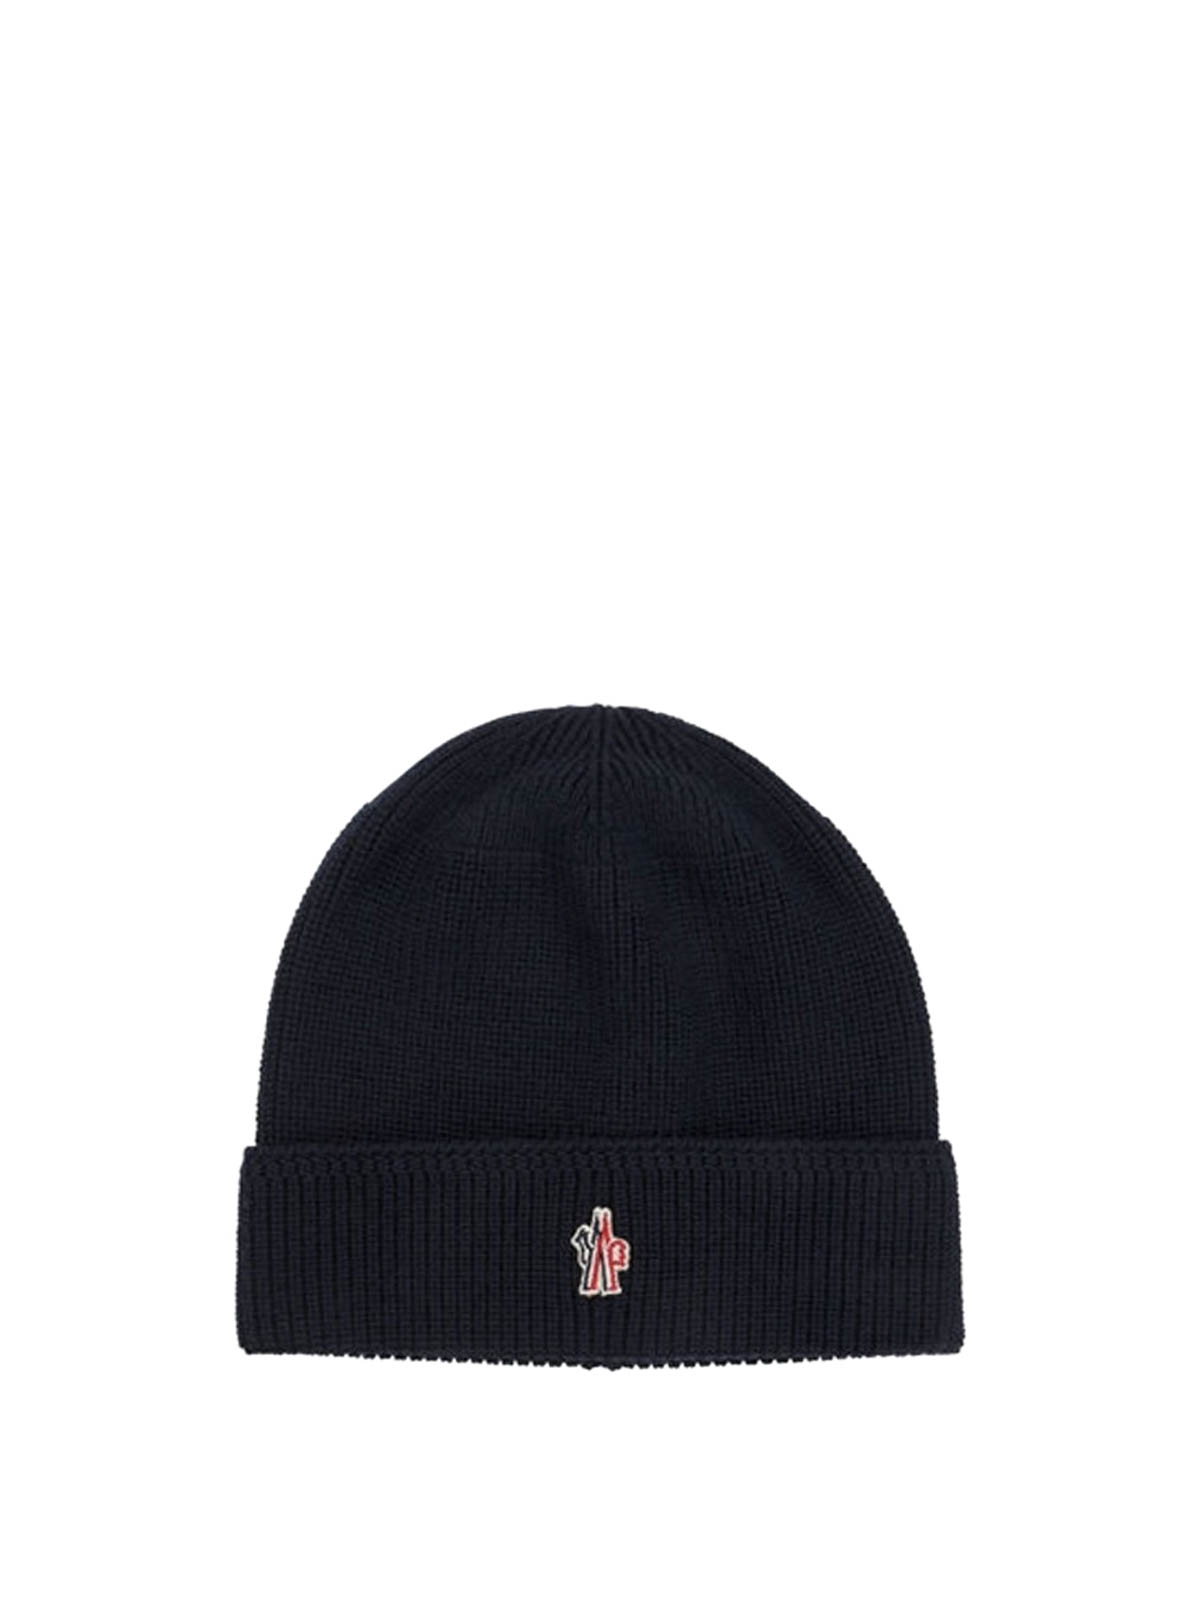 Moncler Grenoble - Logo detailed wool beanie - beanies - 2240004761999 779a9f867e1f